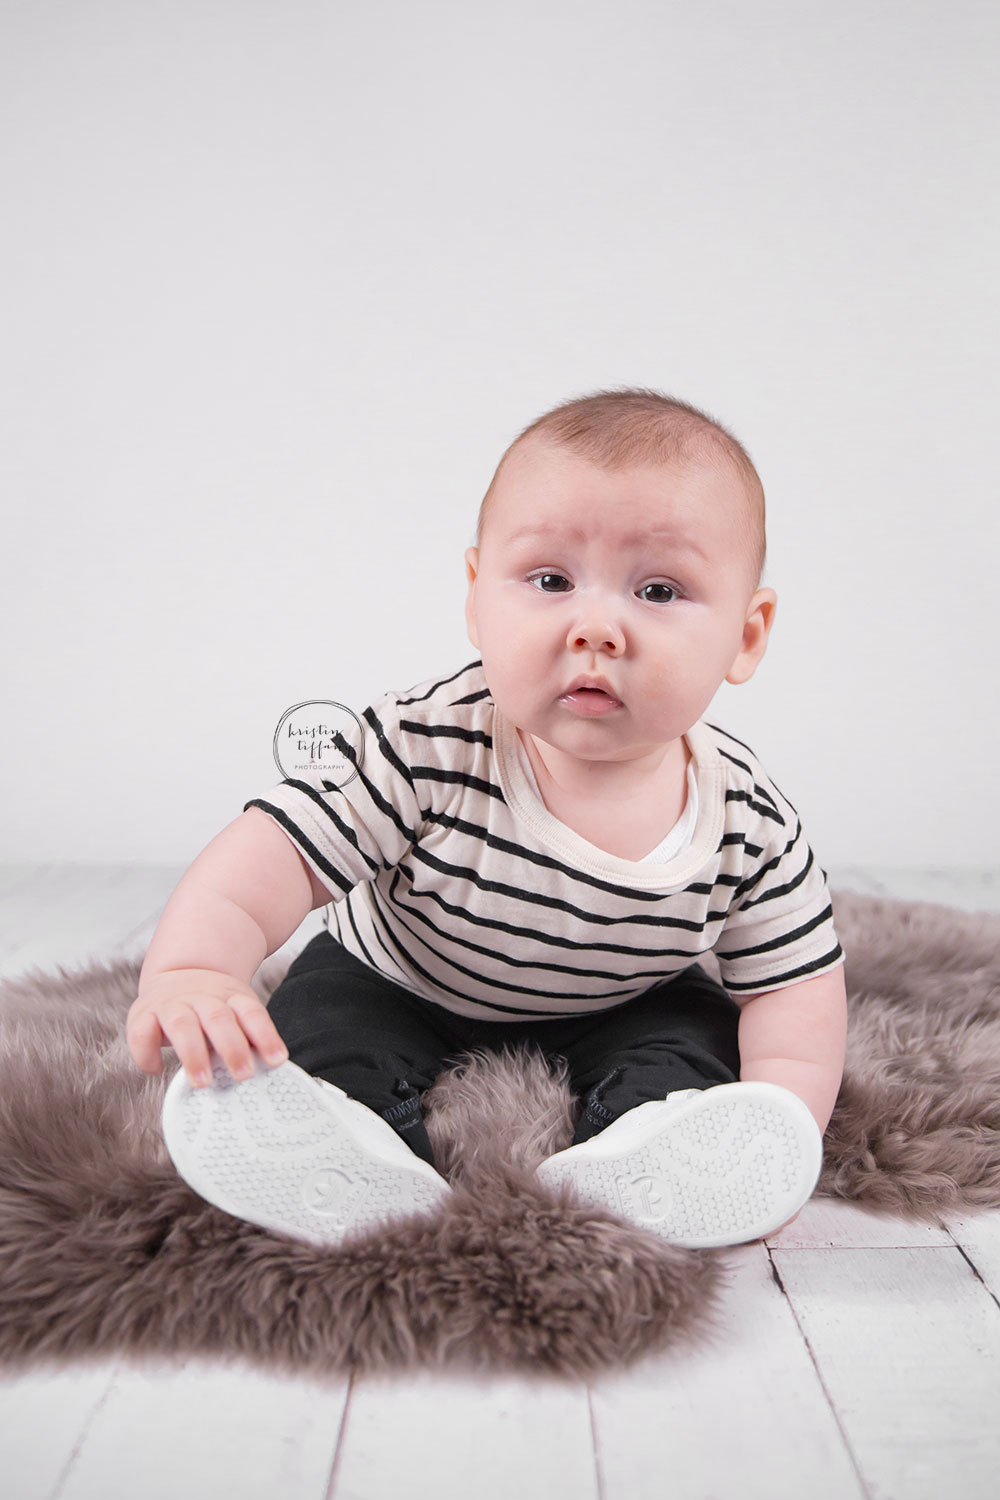 a photo of a baby boy on a fur rug